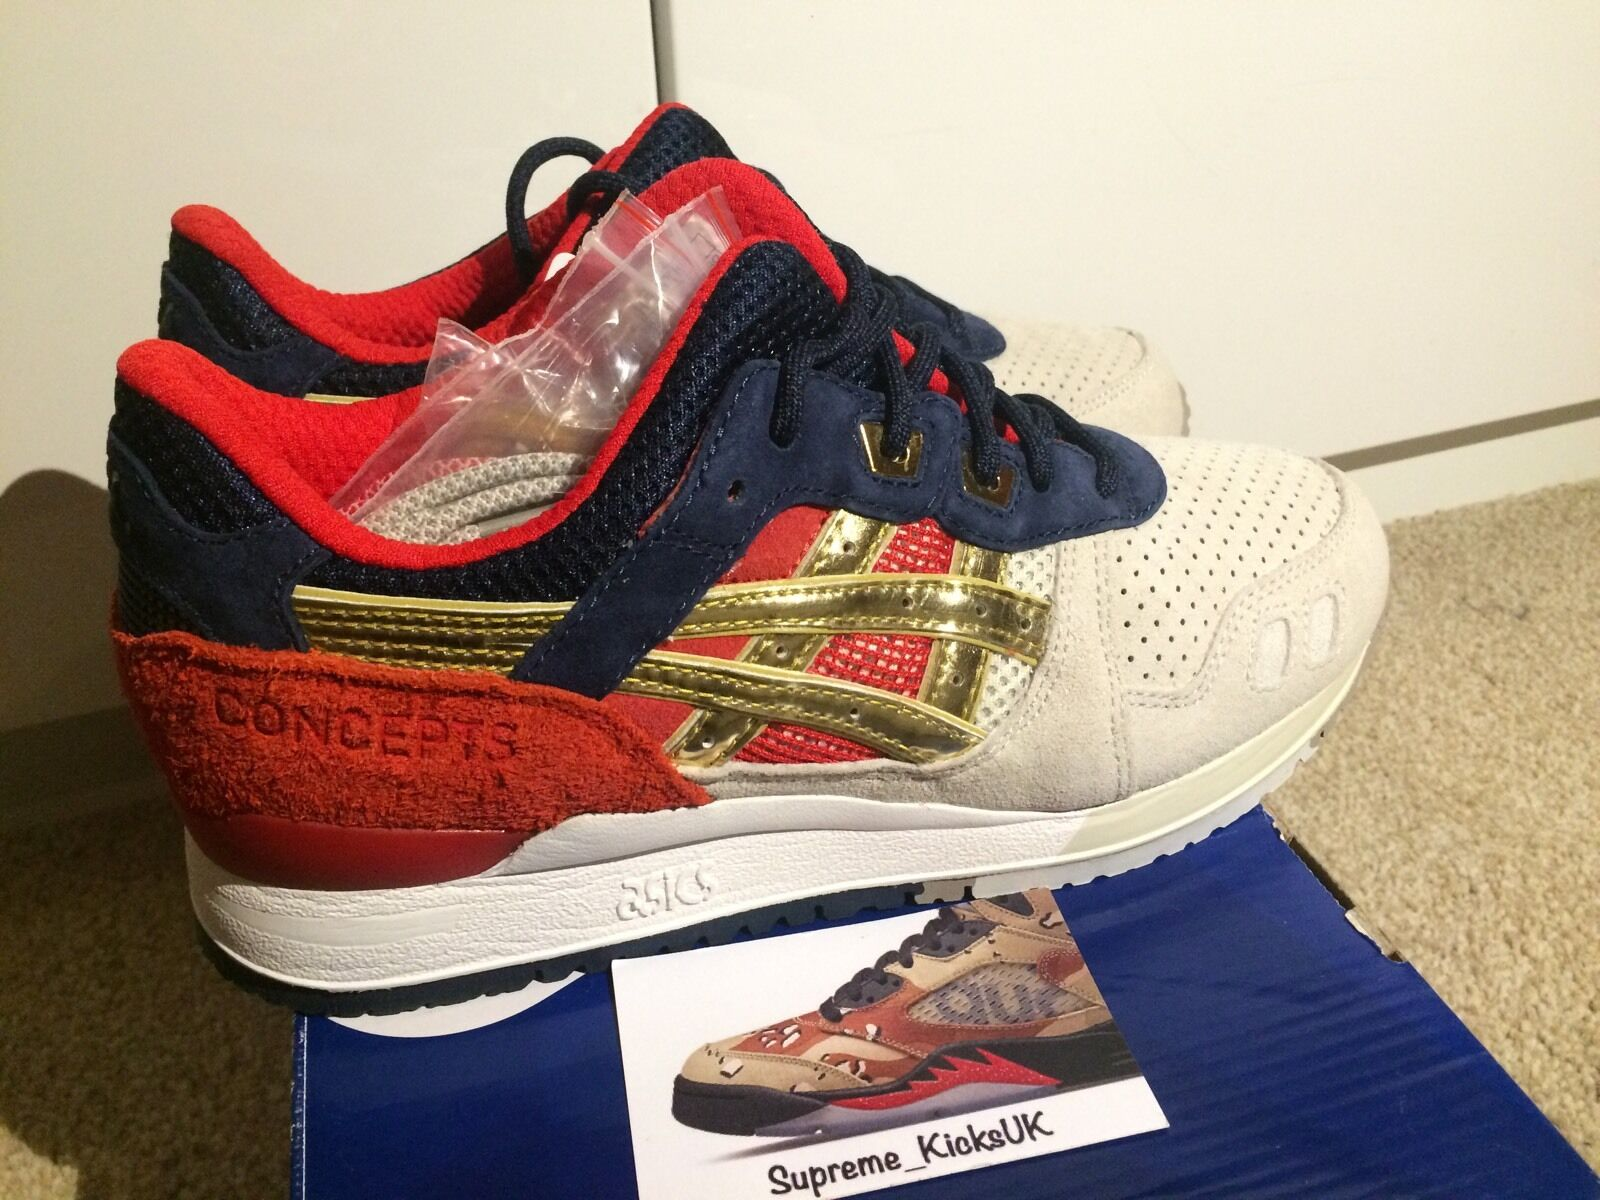 Asics x Concept GL3 'Boston Tea Party' UK5/US6